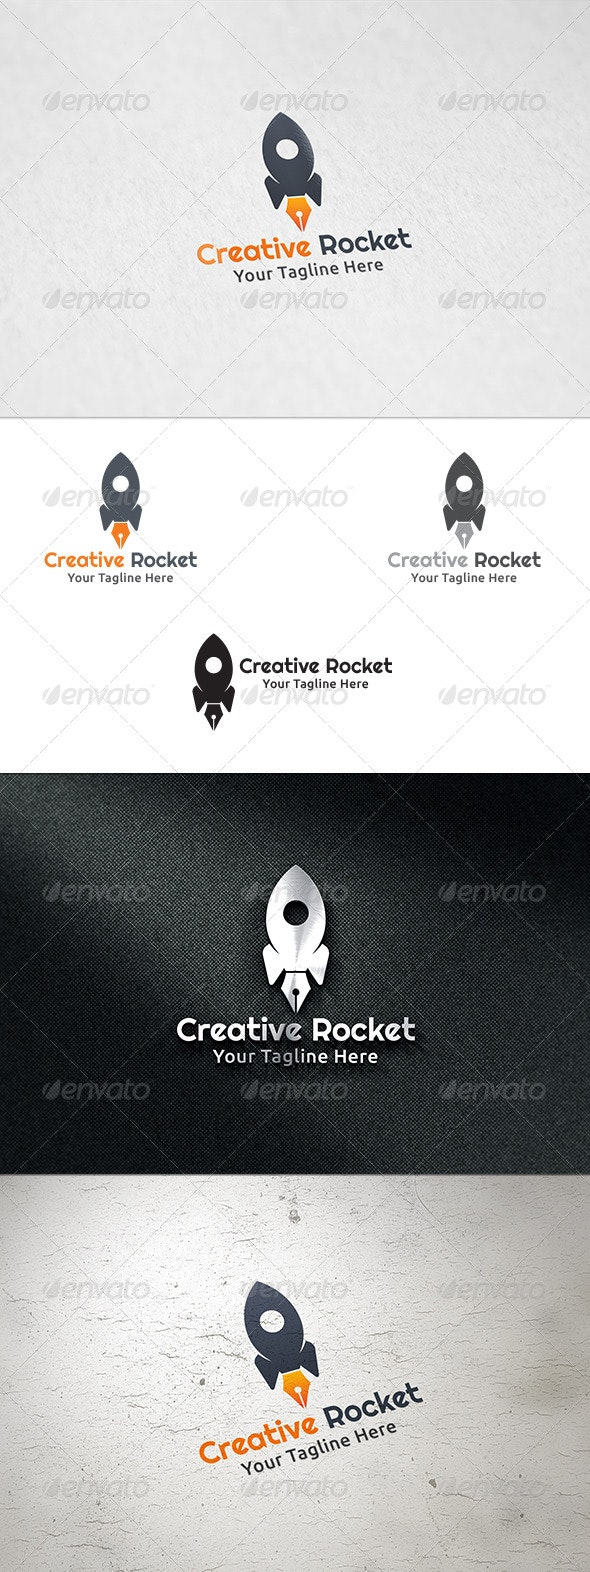 Creative Rocket - Logo Template - Objects Logo Templates